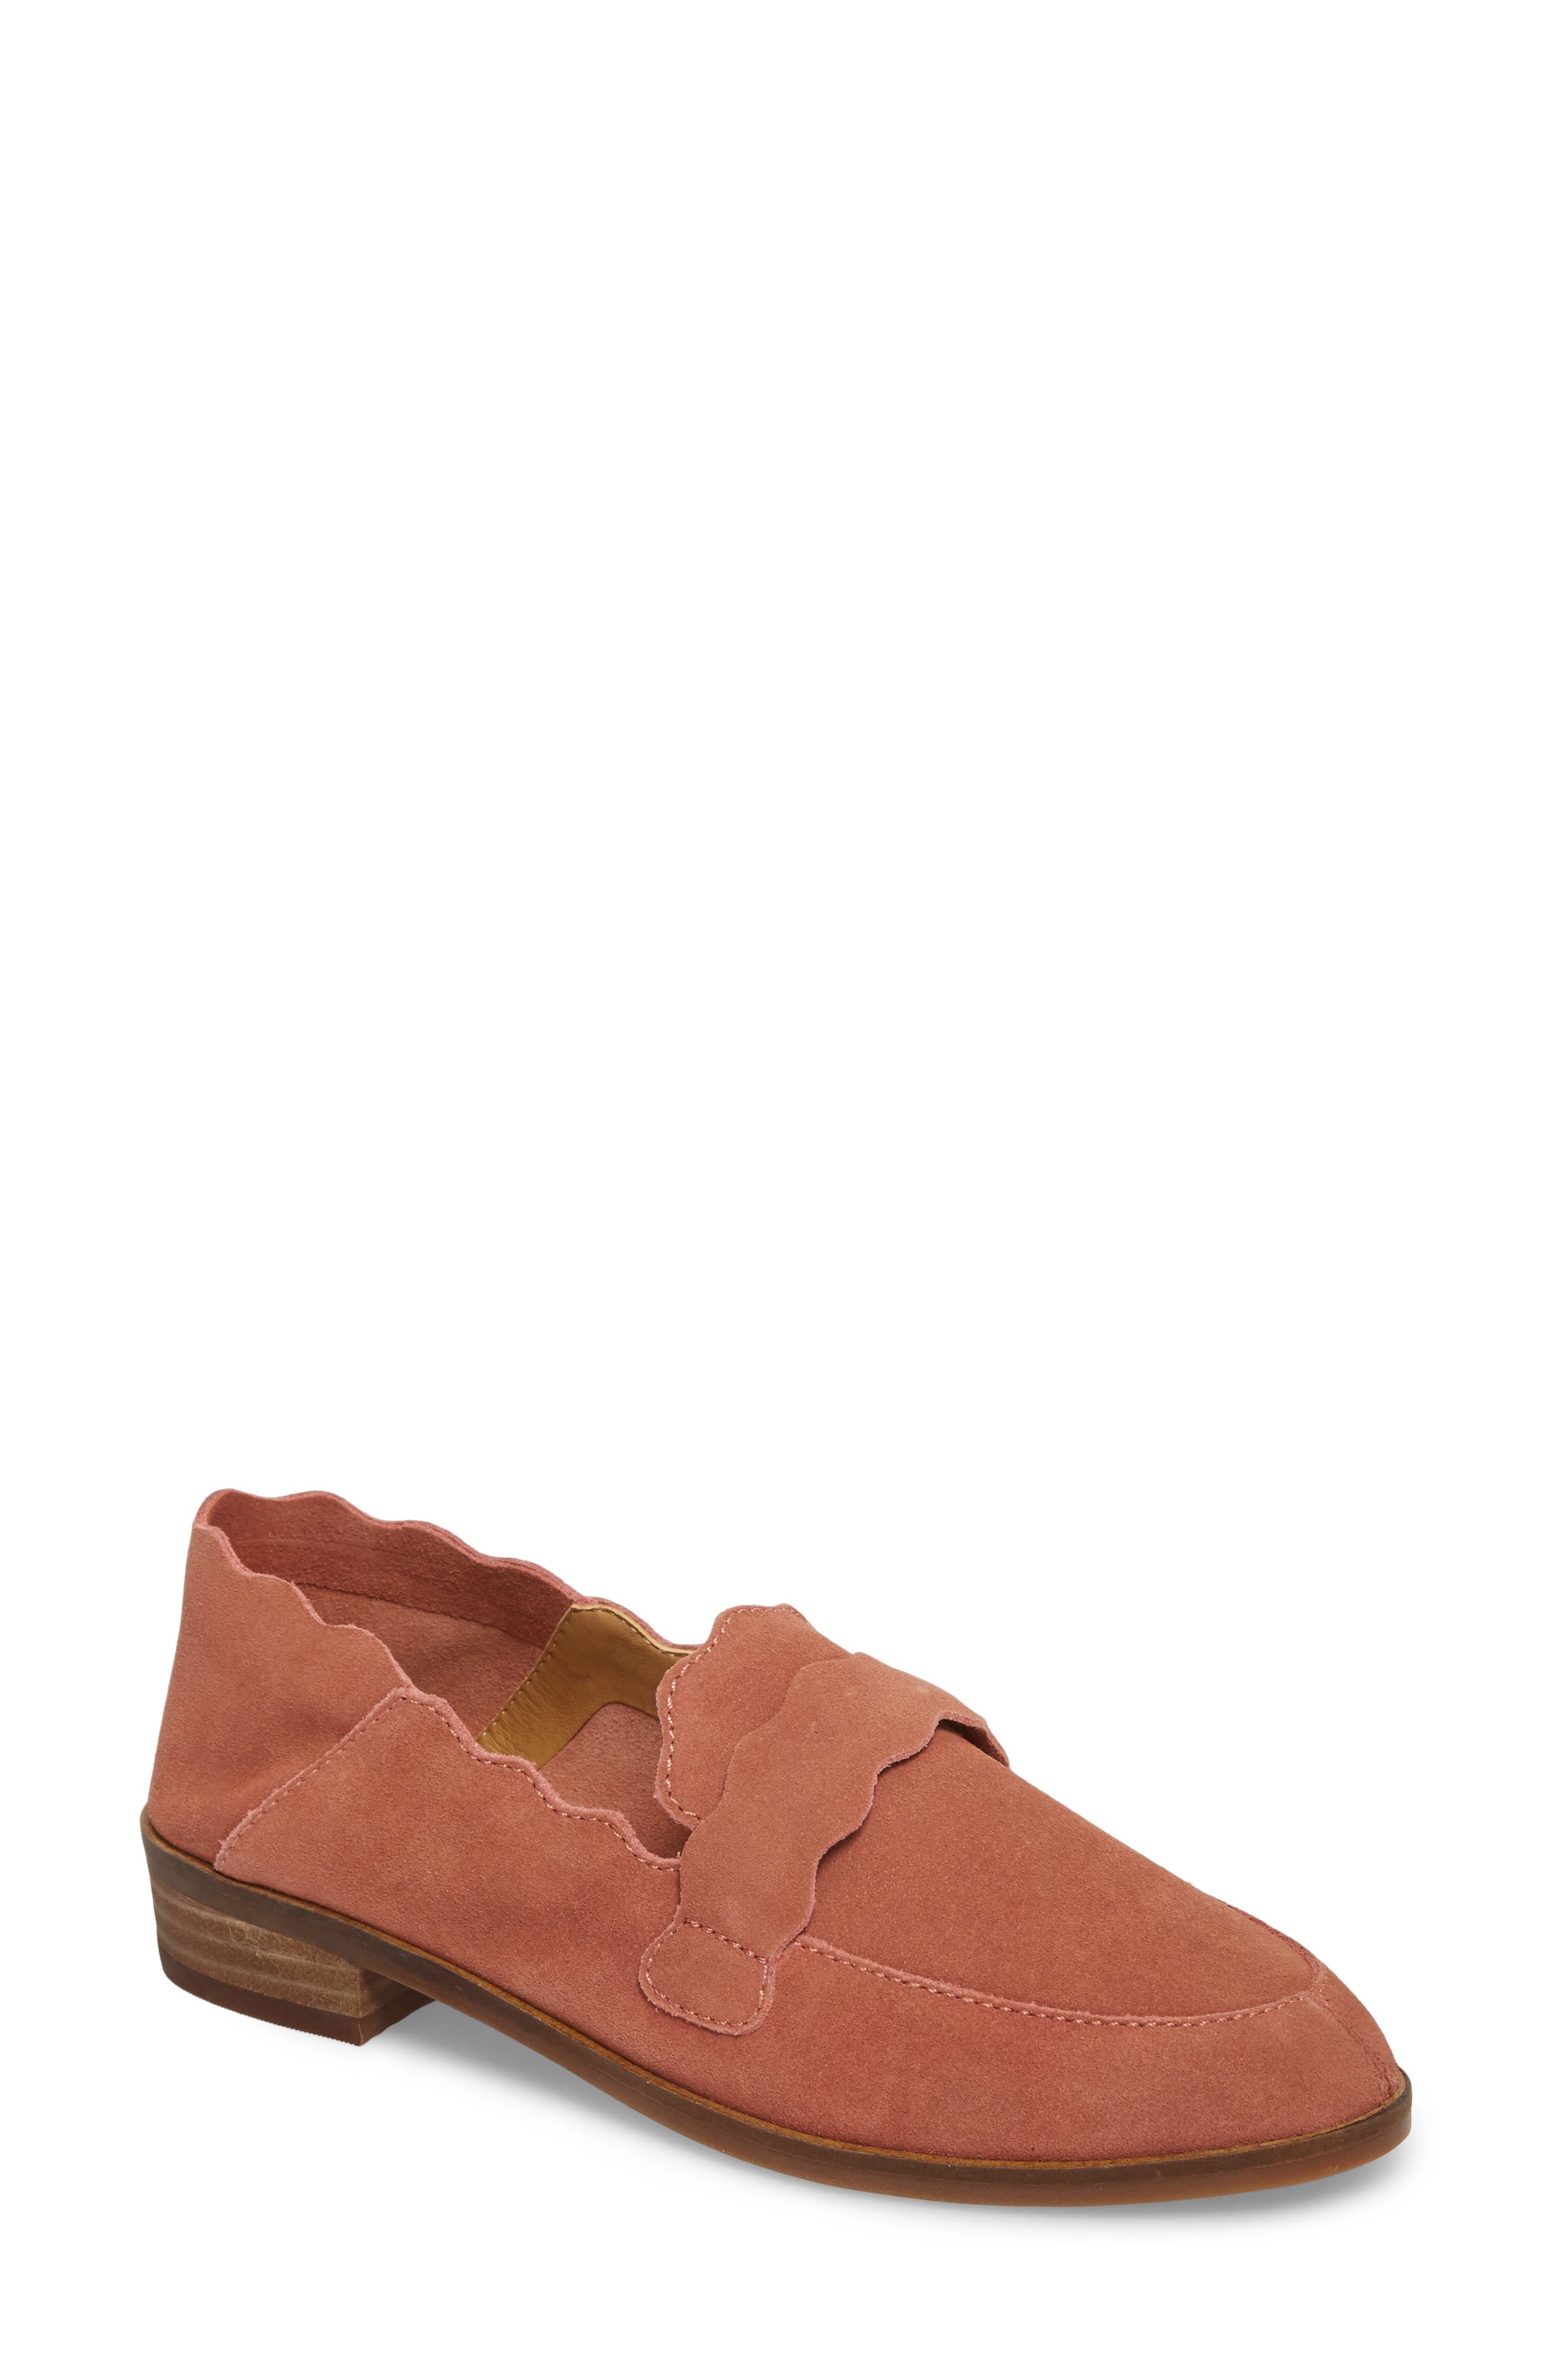 Callister Loafer,                             Main thumbnail 1, color,                             Canyon Rose Suede